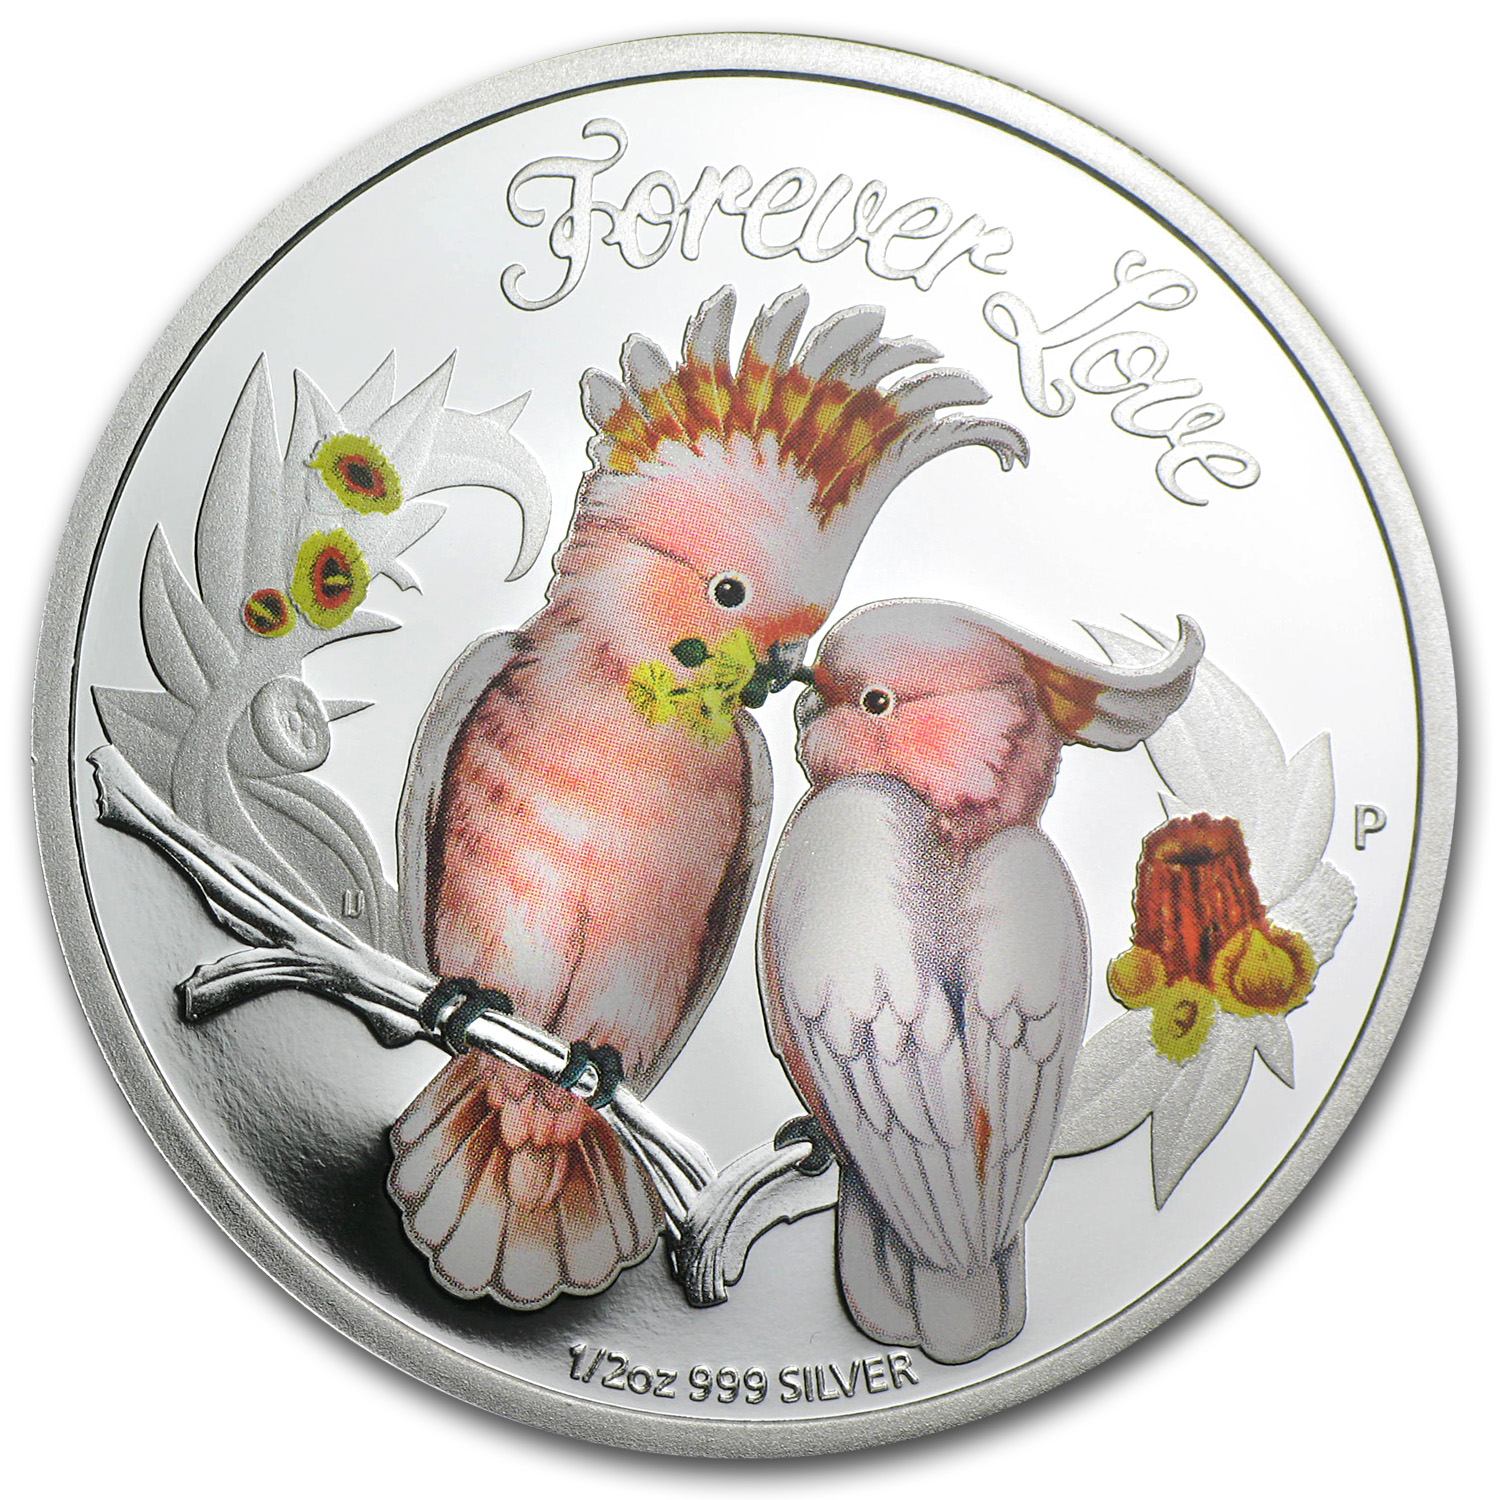 2014 Tuvalu 1/2 oz Silver Forever Love Cockatoos Proof